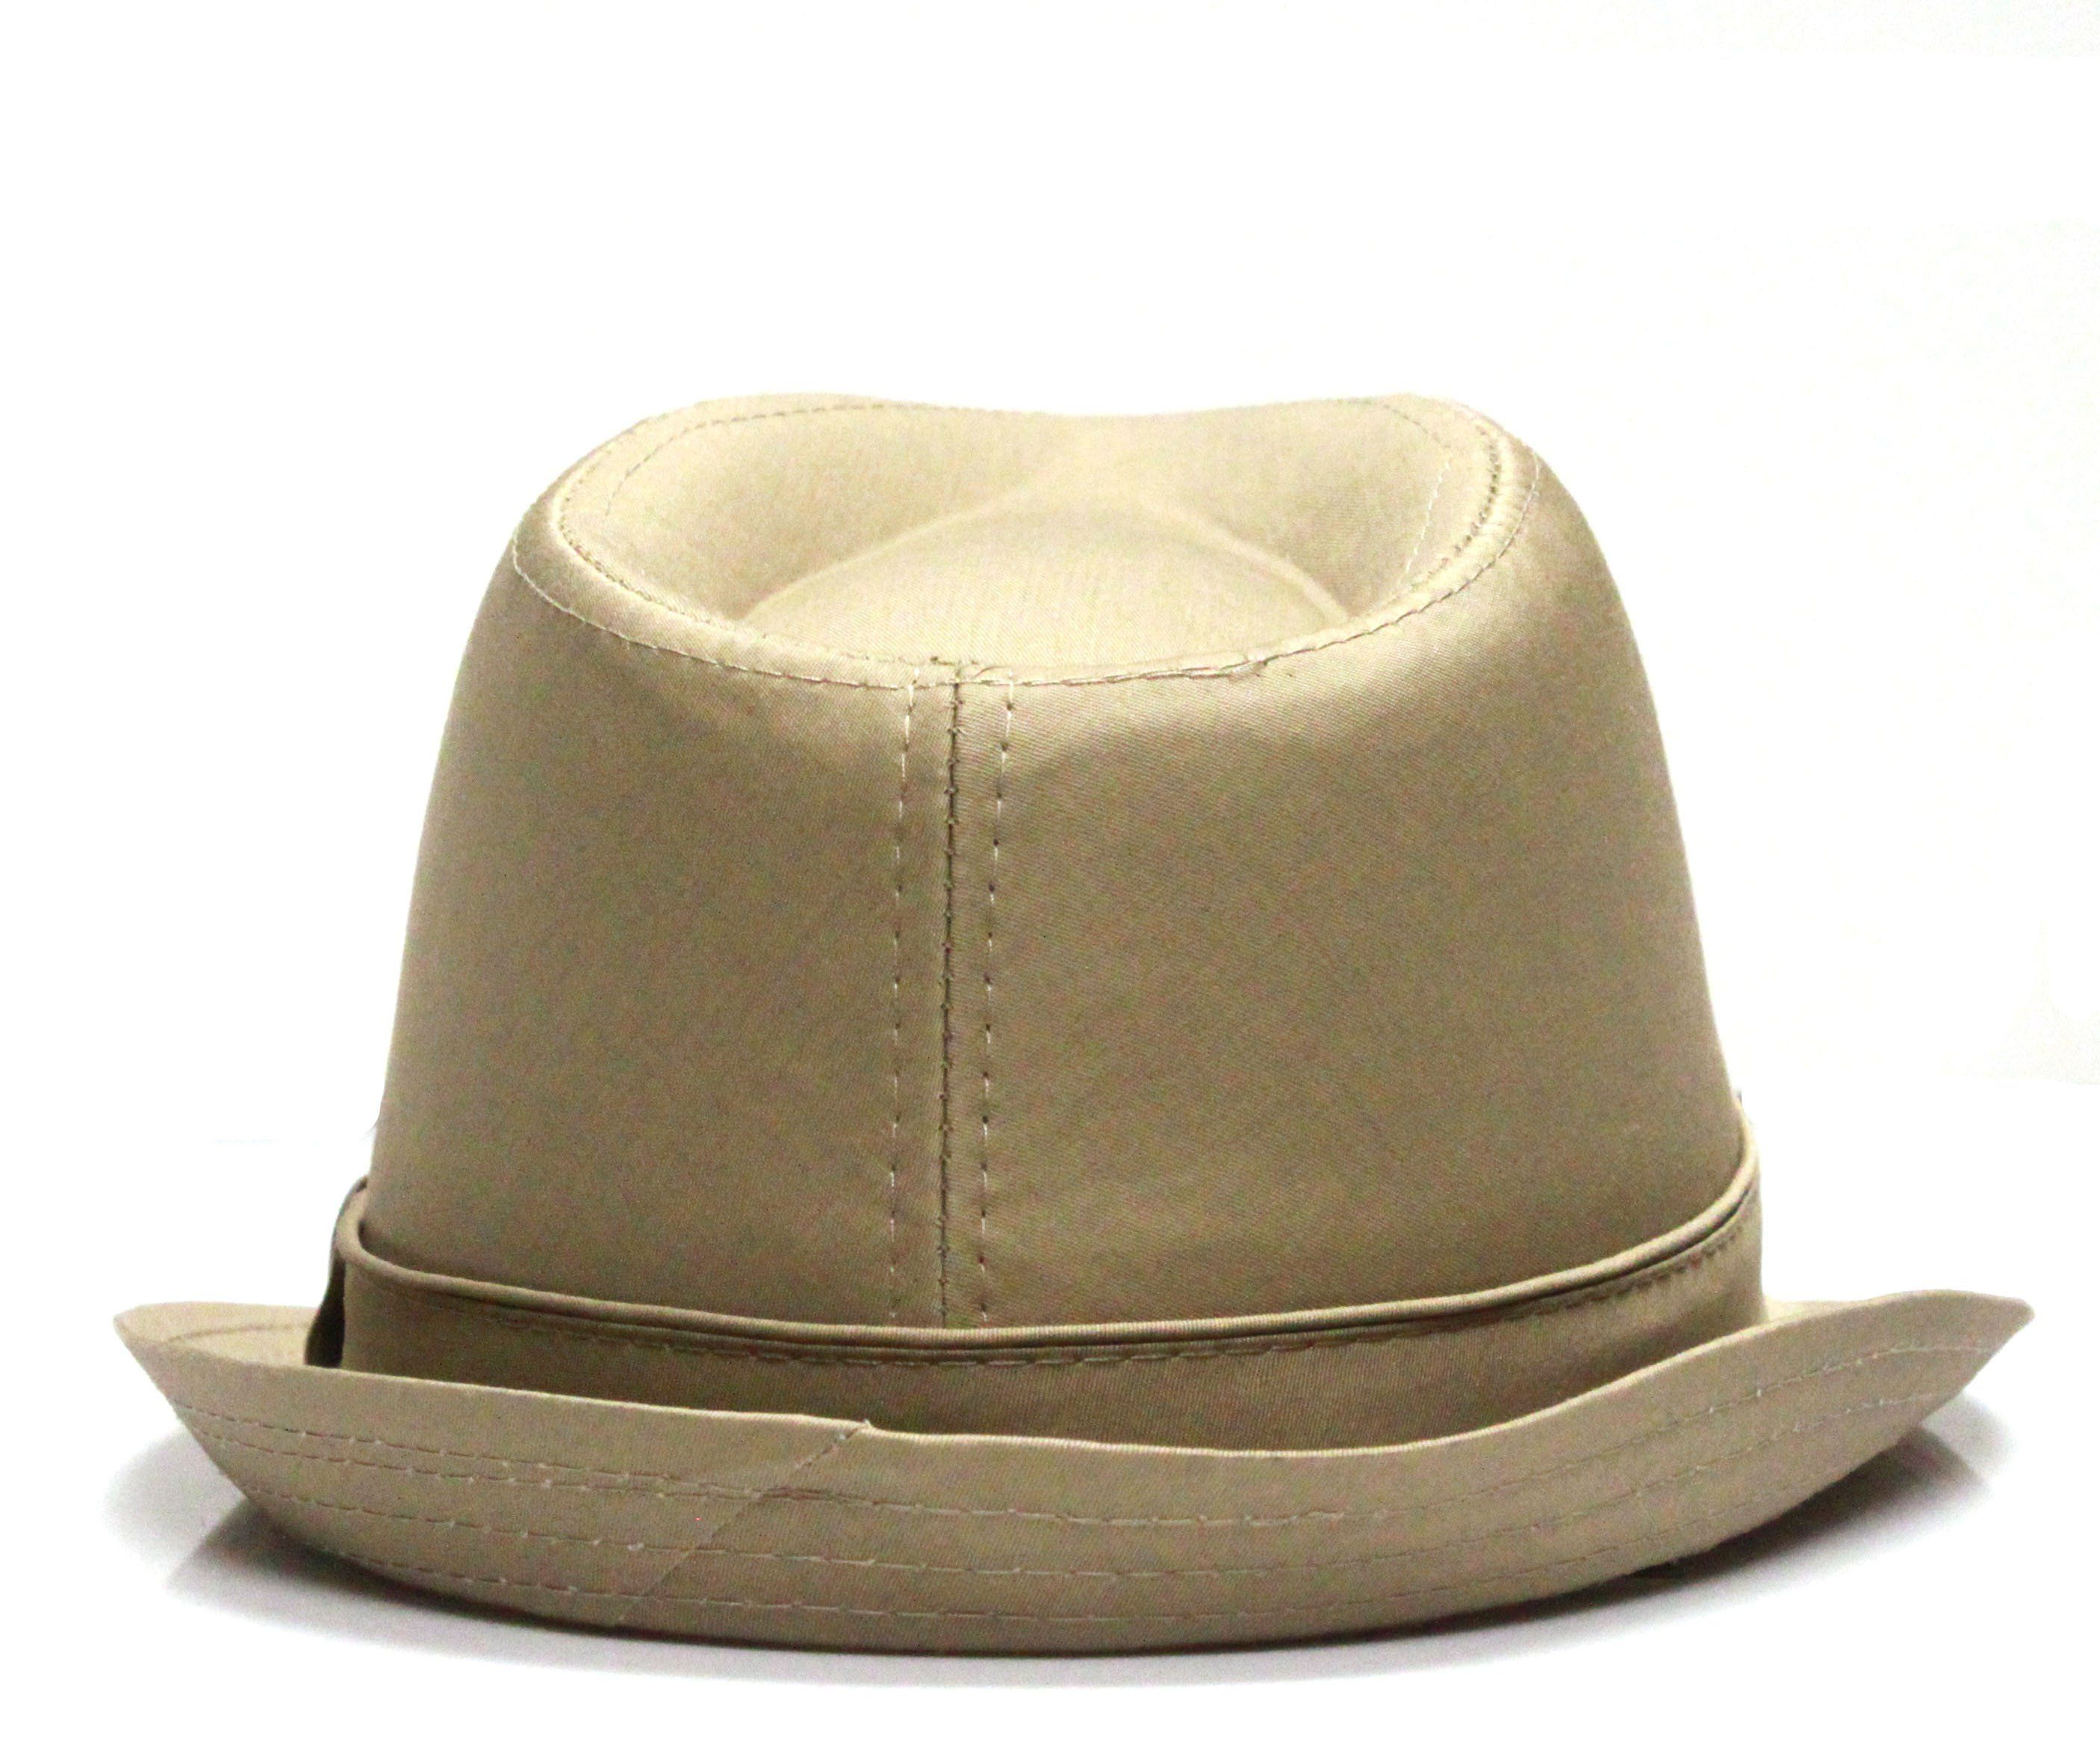 Pamoa, Pamoa Pmt110 Cotton Solid Trilby Fedora Hats, Accessories, Hot Sale Product - Leez Department Store